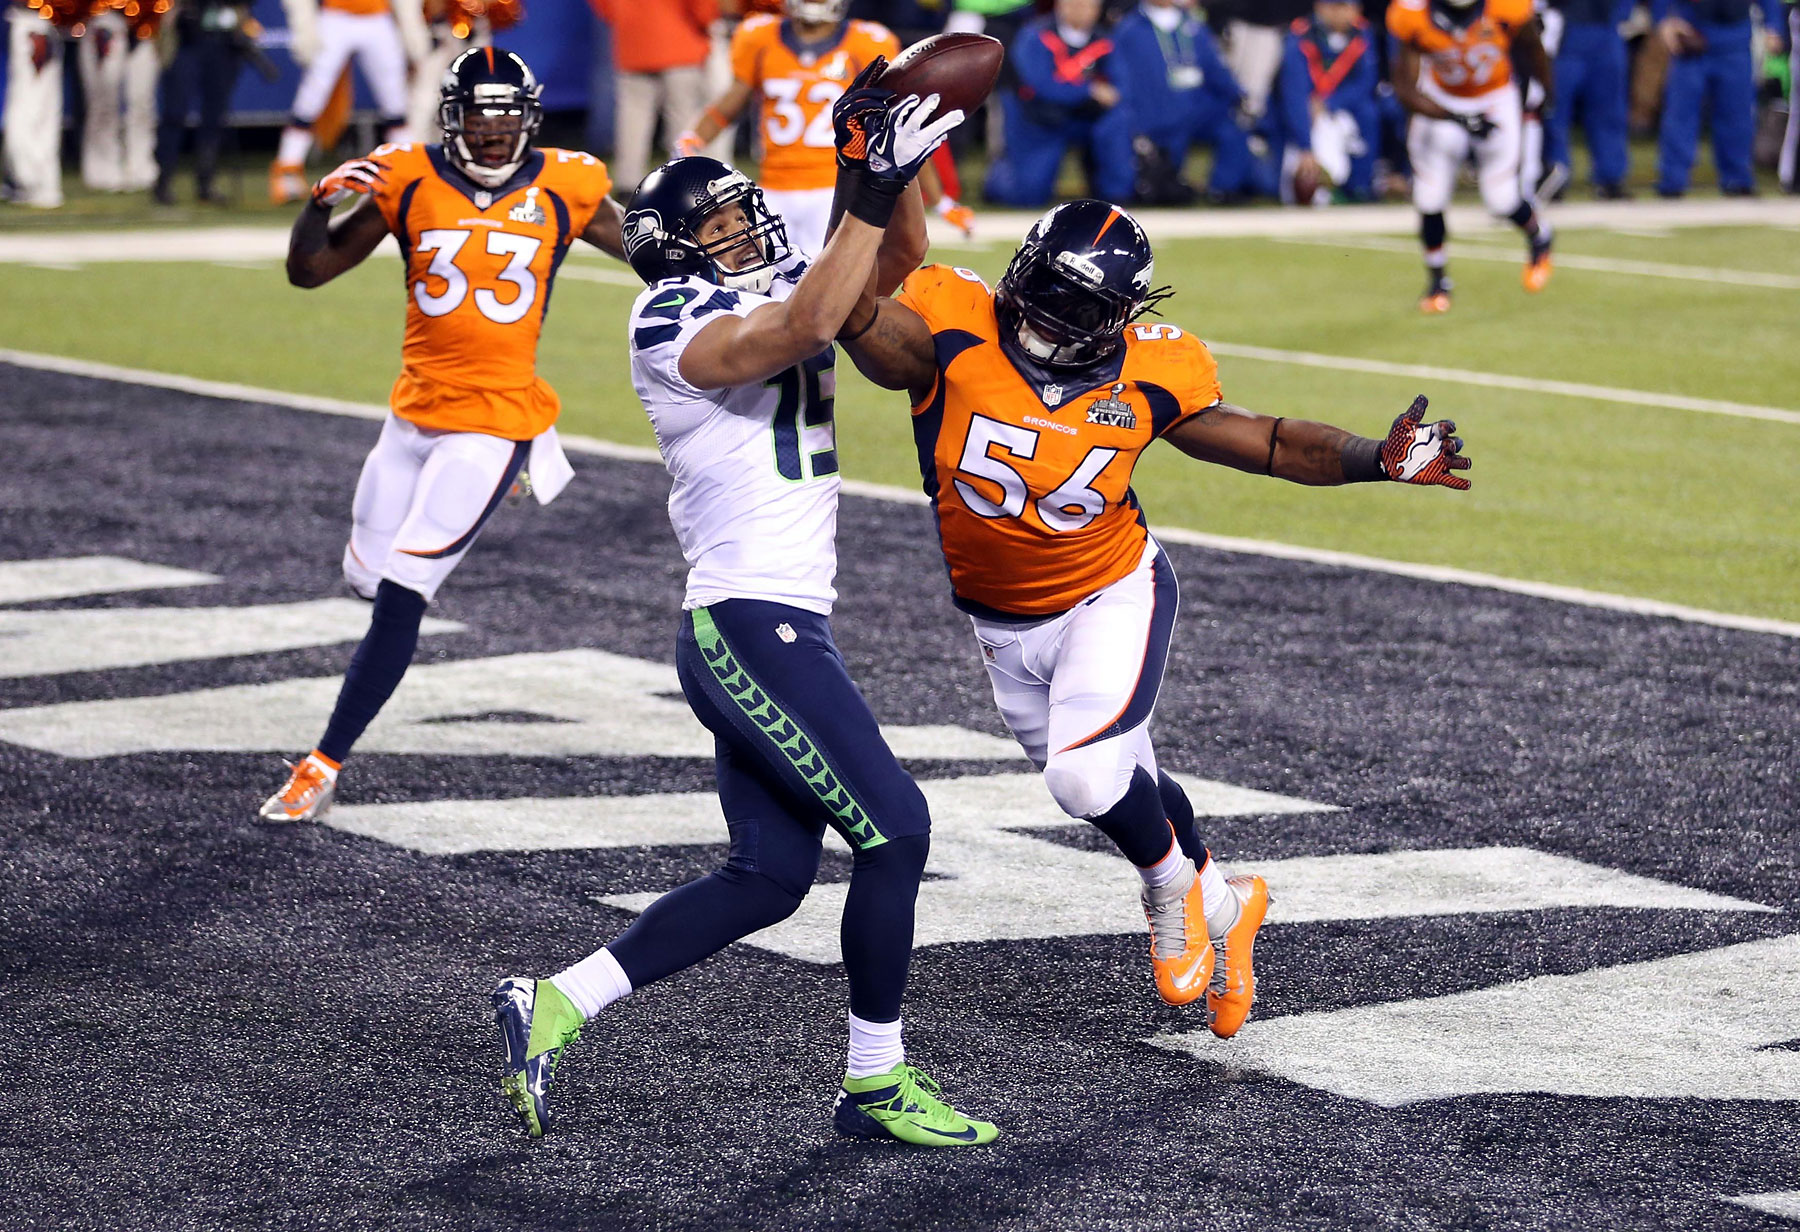 Denver Broncos outside linebacker Nate Irving breaks up a pass intended for Seattle Seahawks wide receiver Jermaine Kearse in the end zone during the first quarter.